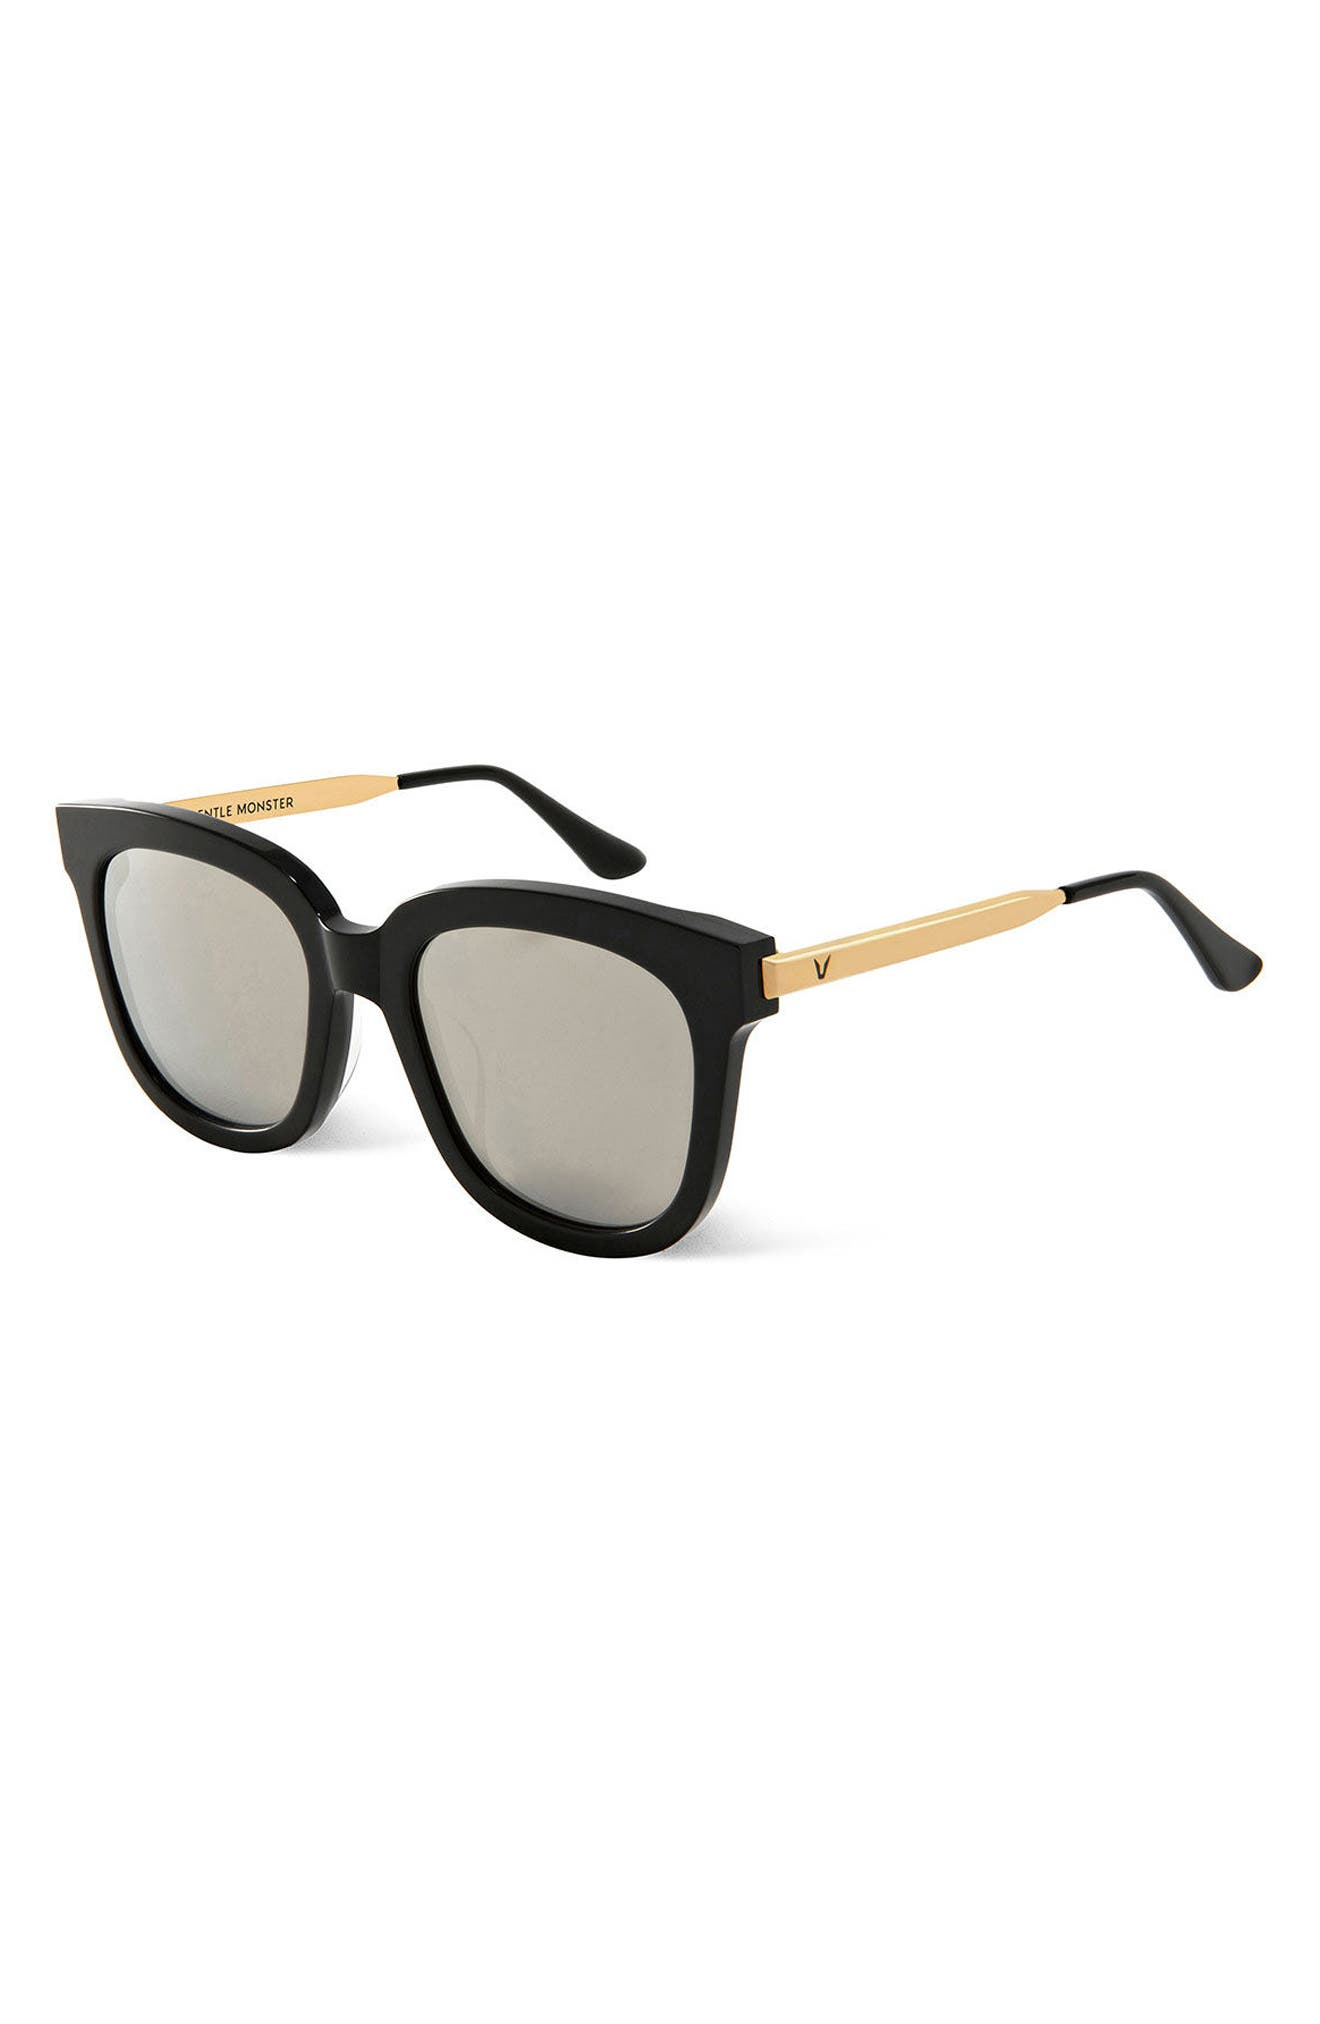 Absente 54mm Sunglasses,                             Alternate thumbnail 22, color,